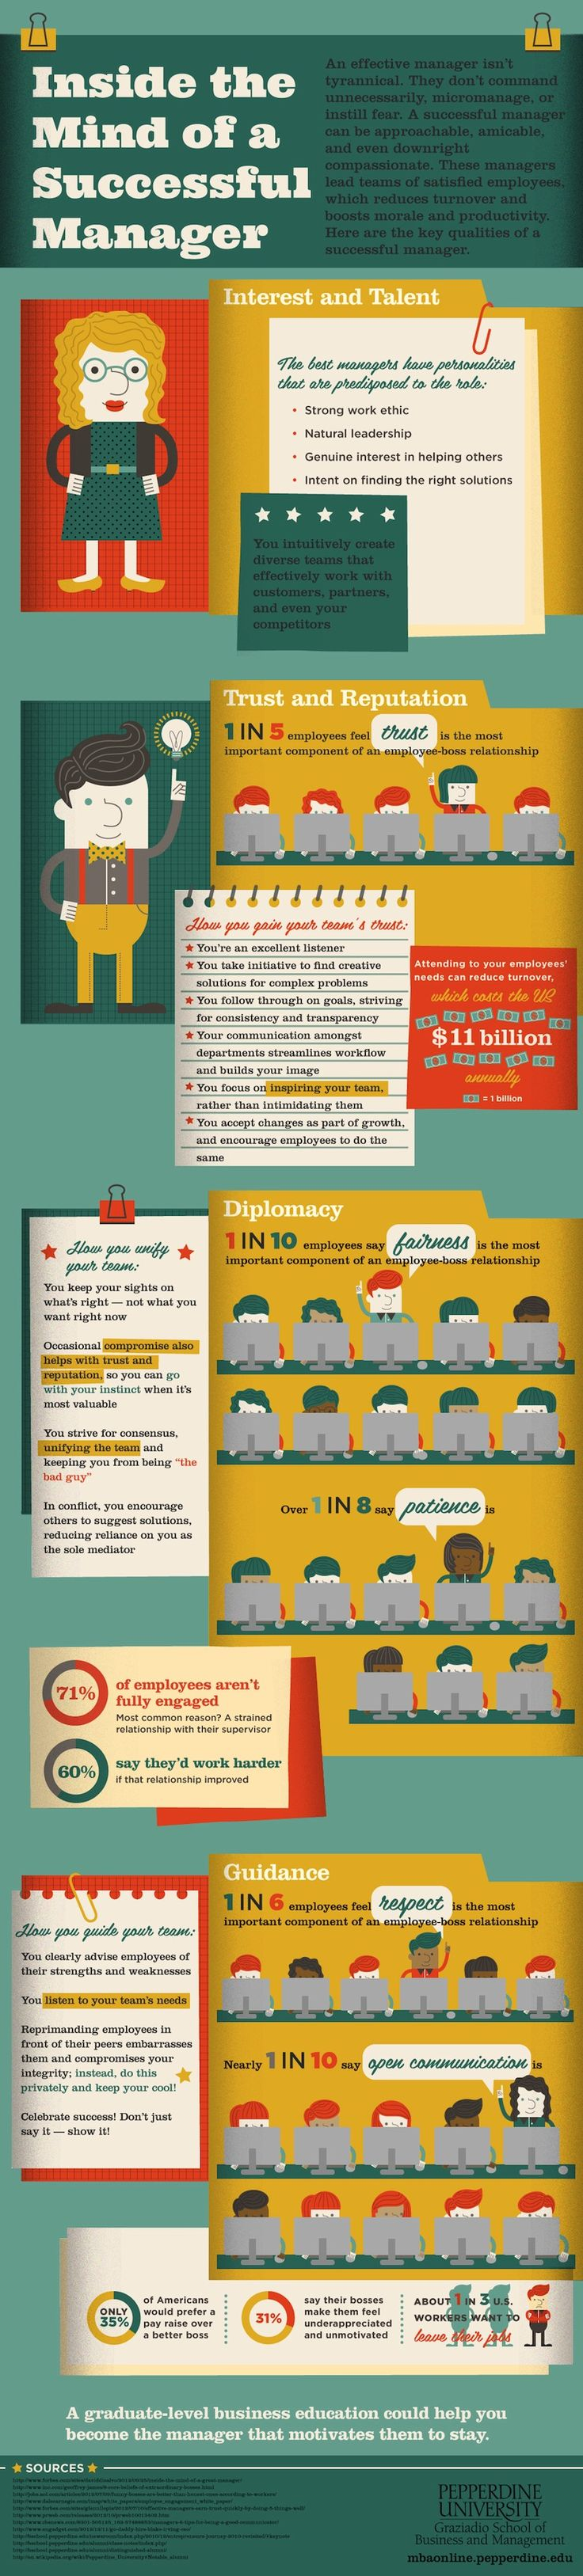 best images about leadership making a difference what makes up a successful manager infographic